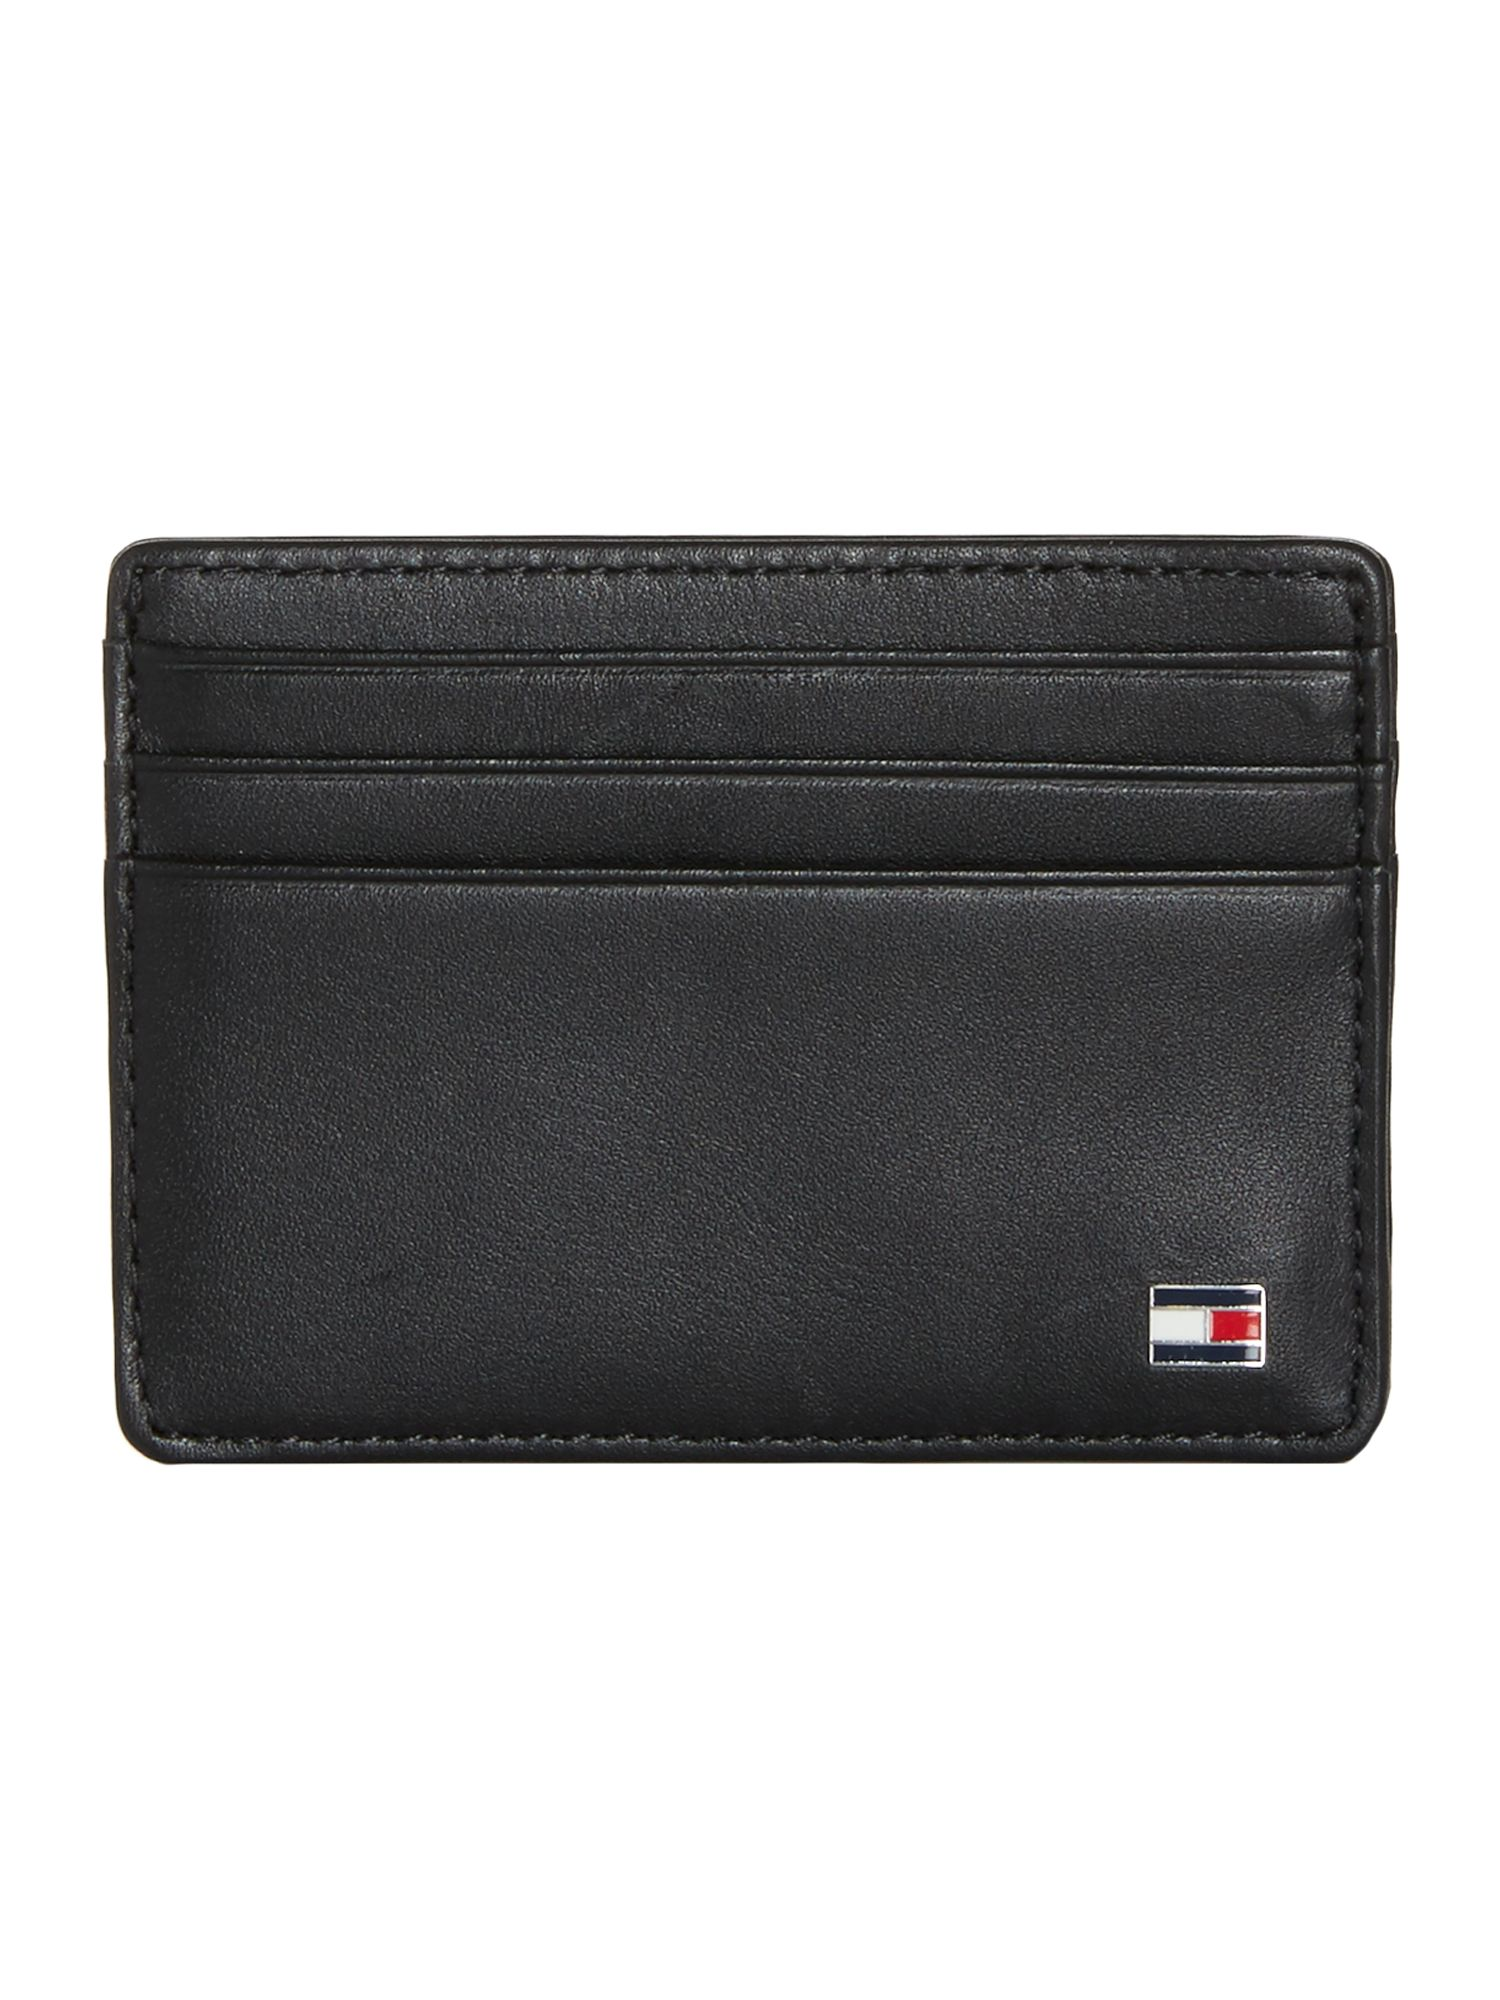 Tommy Hilfiger Eton Cc Holder Black ztAMaw